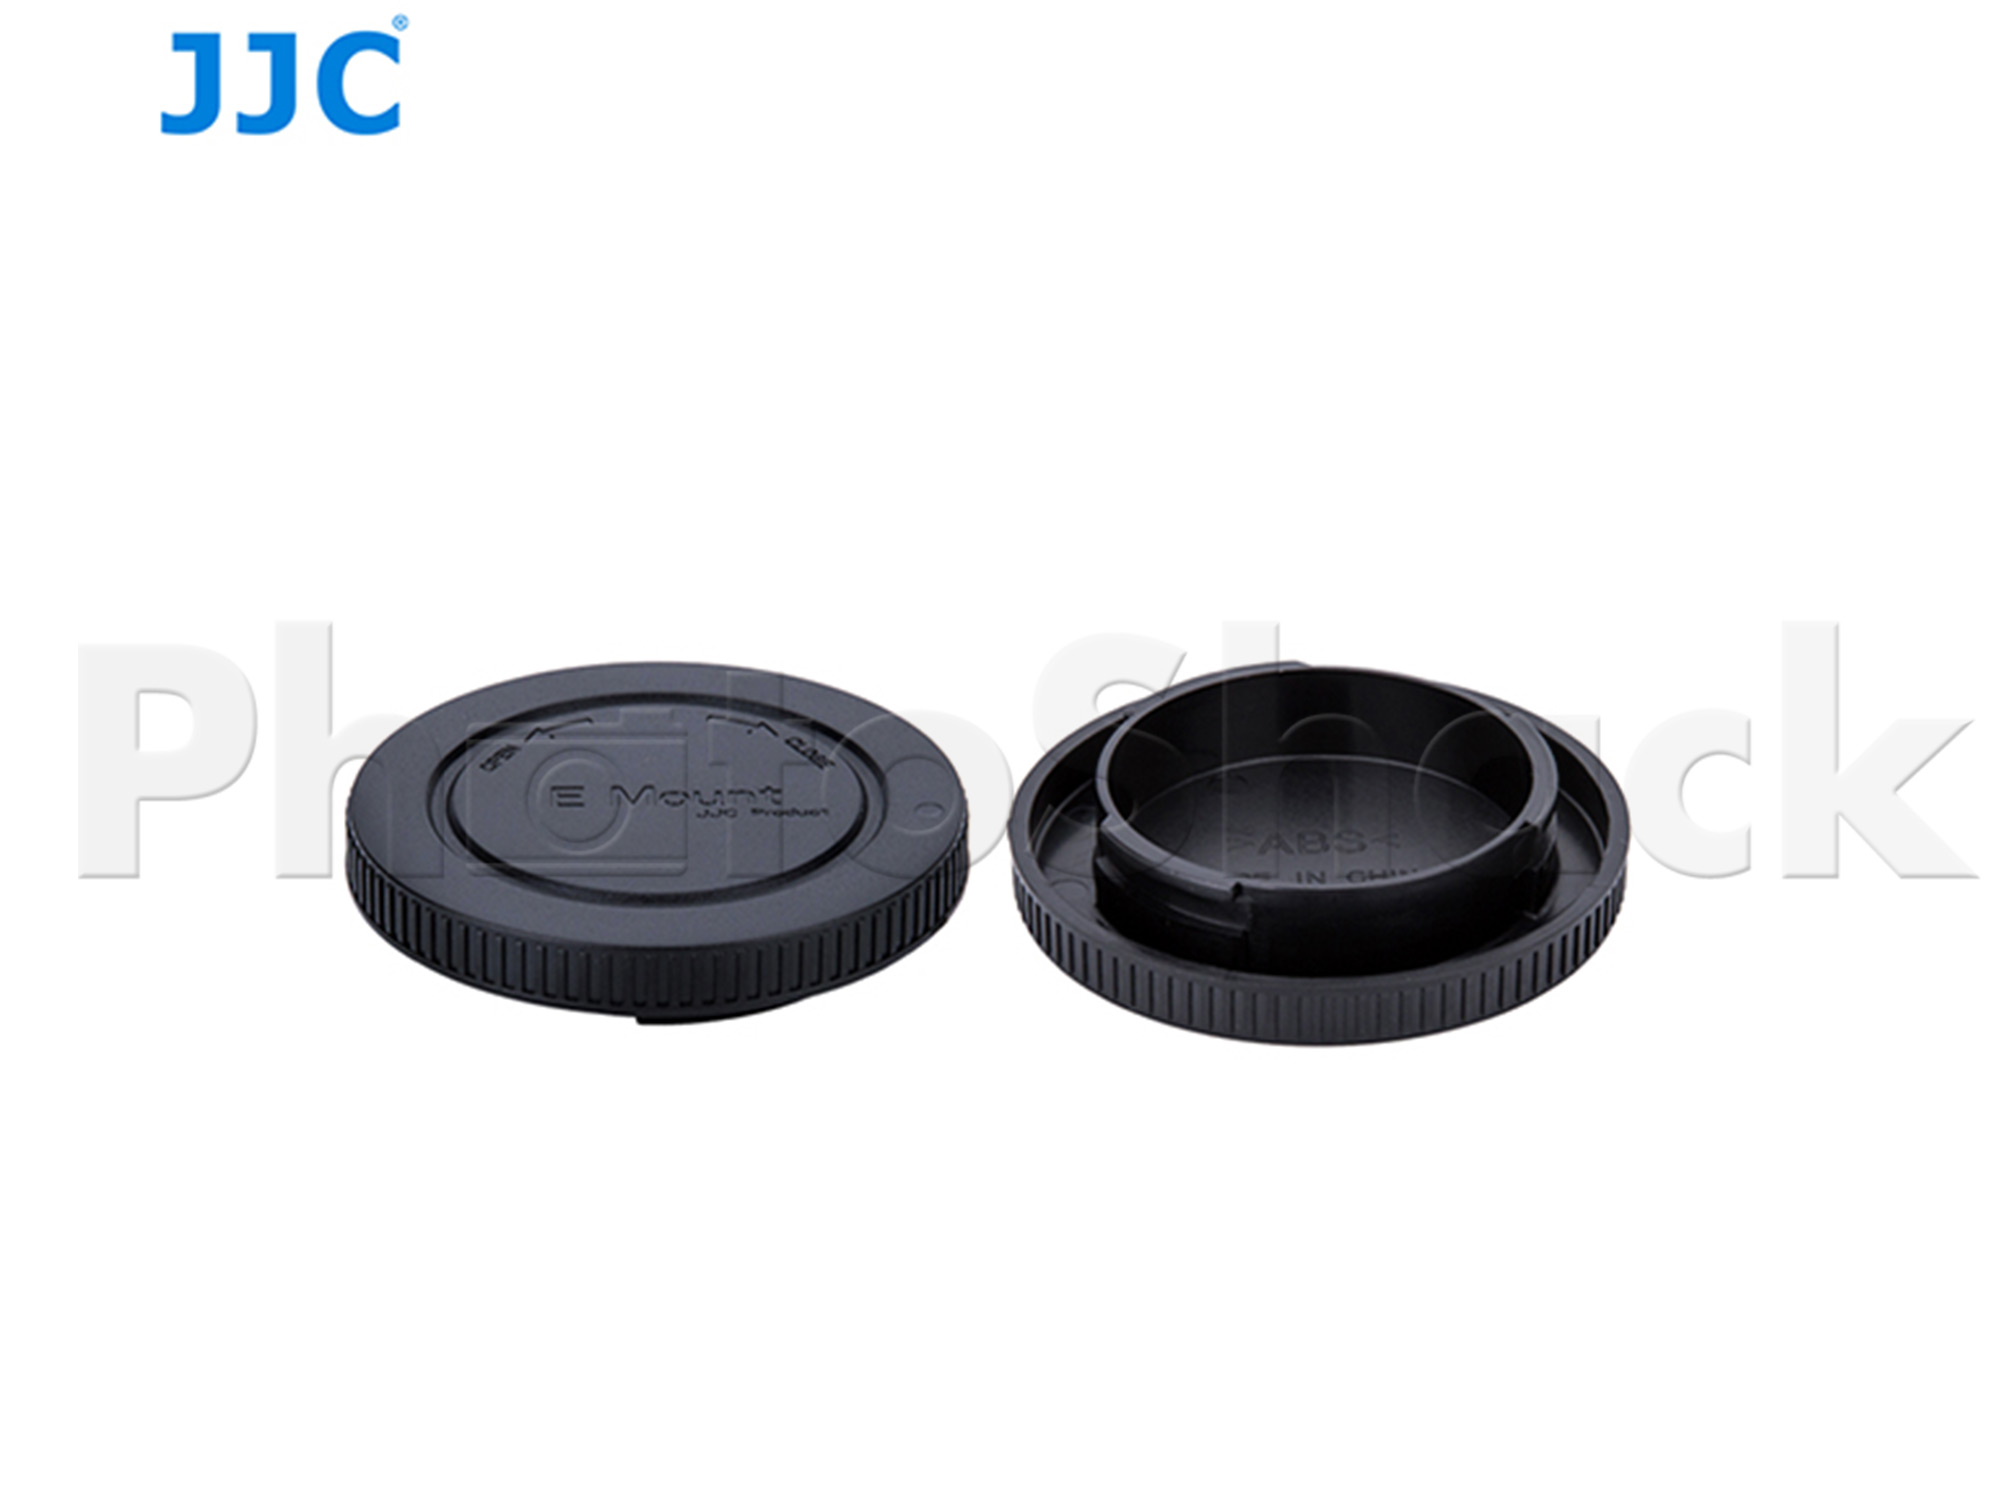 Body & Rear Lens Cap for Sony E Mount